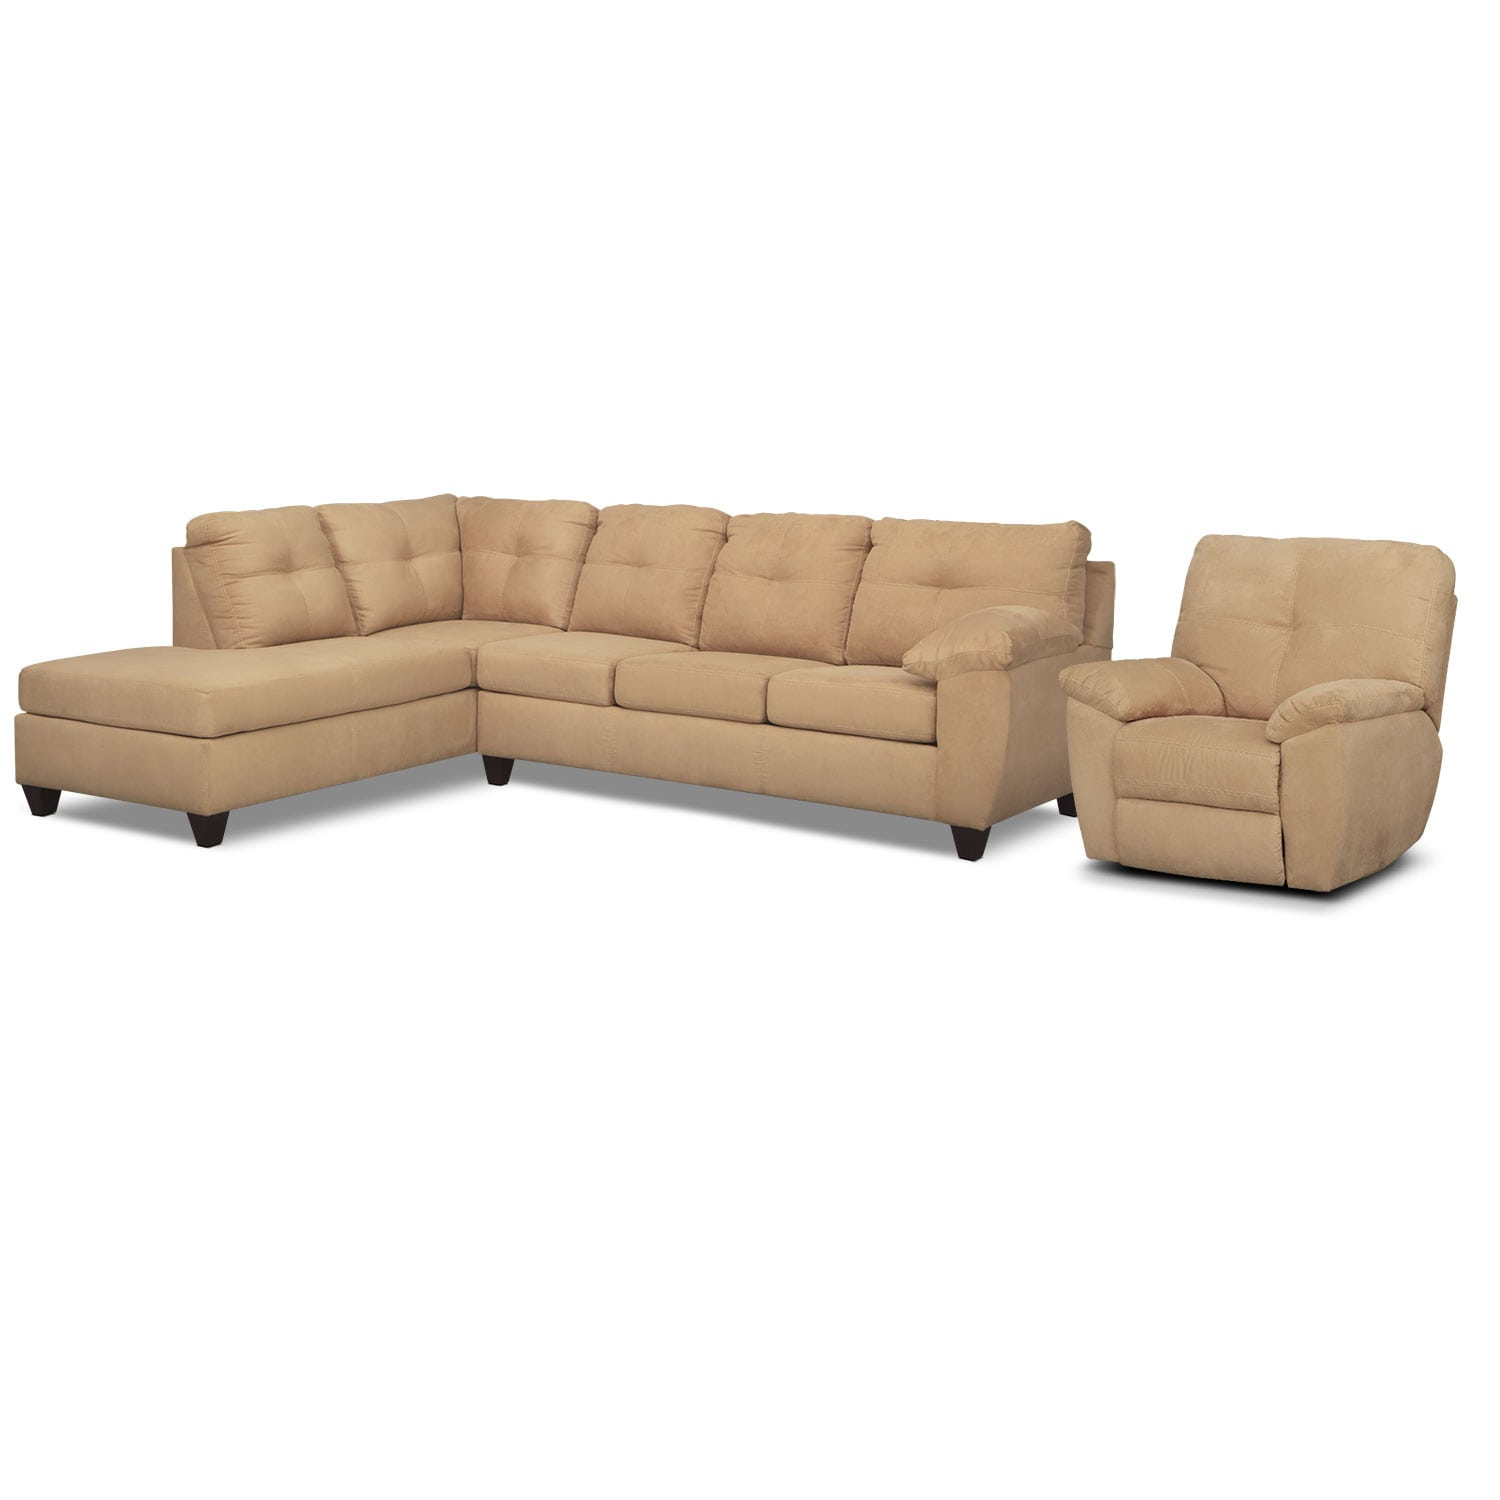 Living Room Furniture - Rialto 2-Piece Sectional with  Left-Facing Chaise and Glider Recliner Set - Camel